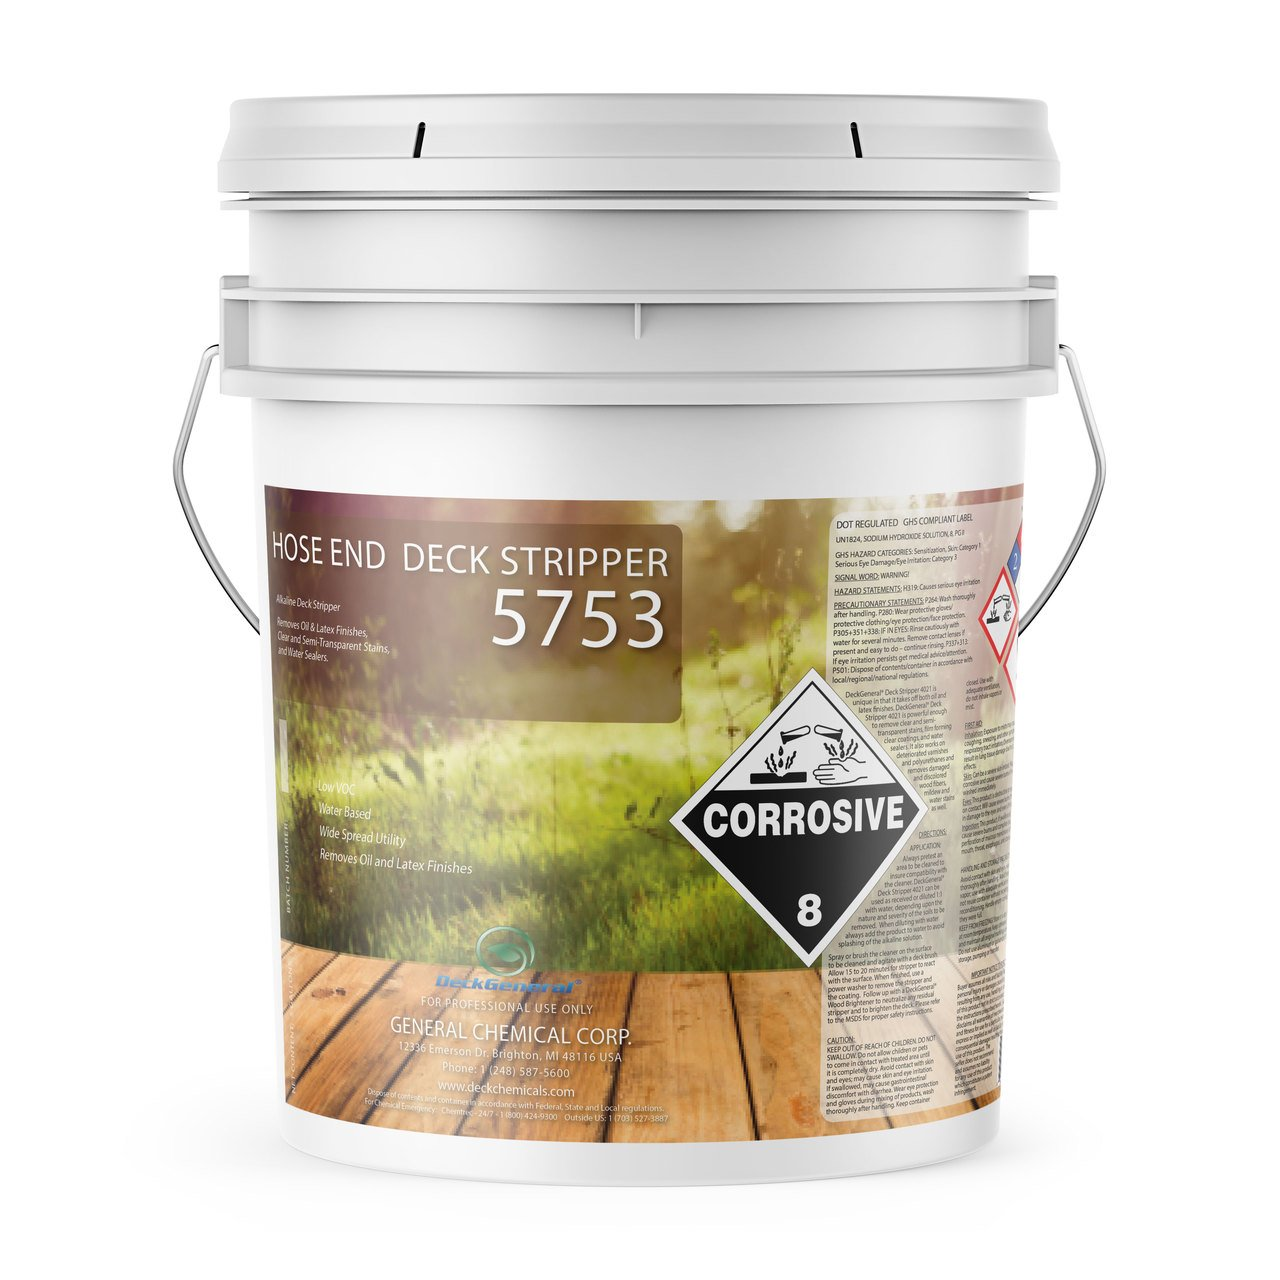 Deck Stripper 5753 by DeckGeneral | Removes Stains, Finishes, Coatings, Sealers & Paint | Easy to Apply | Works on Multiple Wood Surfaces | 0 VOC | Water Based Formula | 5 Gallons